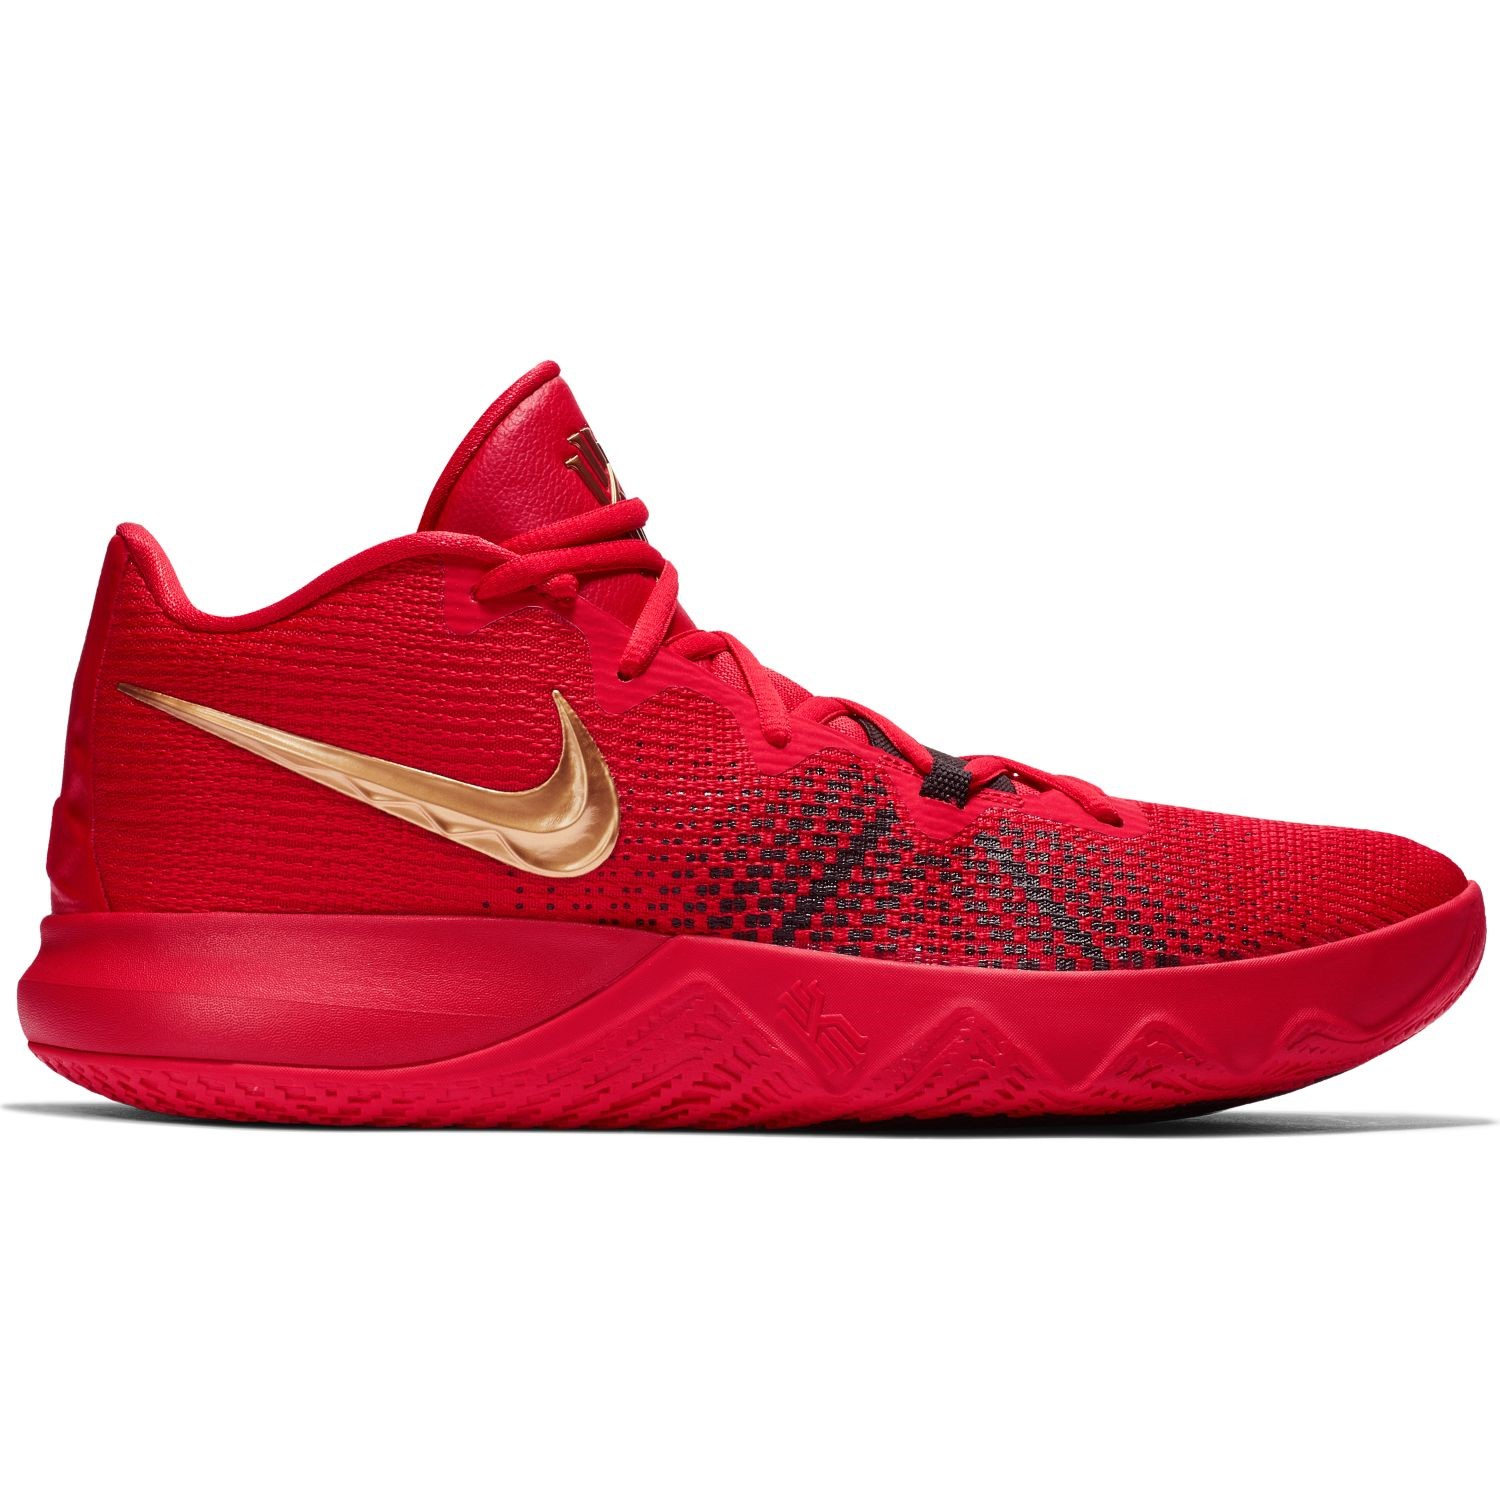 fb7969515d7d Nike Kyrie Flytrap - Mens Basketball Shoes - University Red Metallic Gold